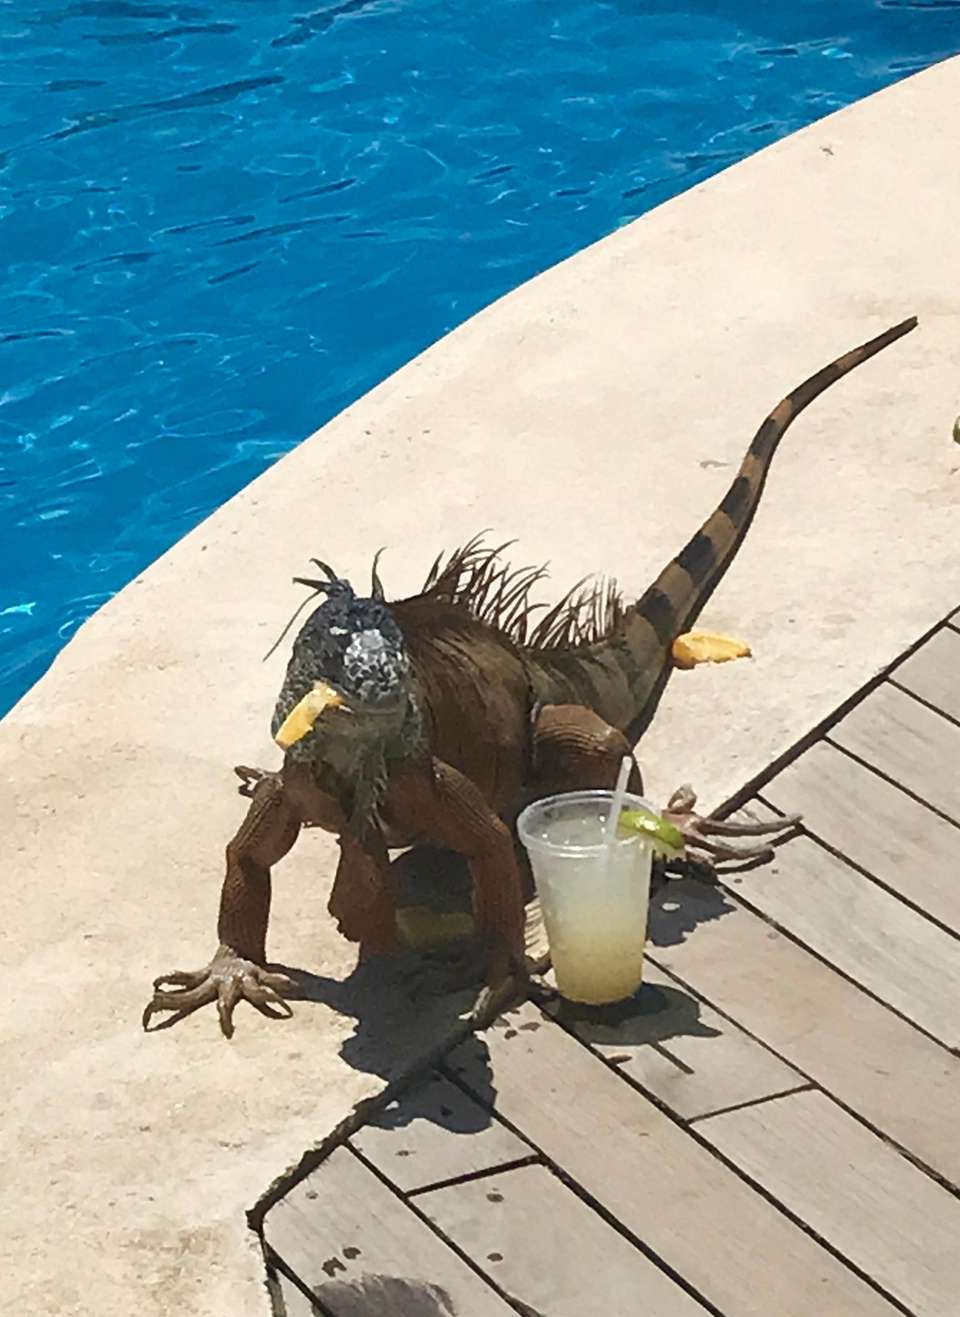 Mr. Iguana during Happy Hour at Vidanta Resort